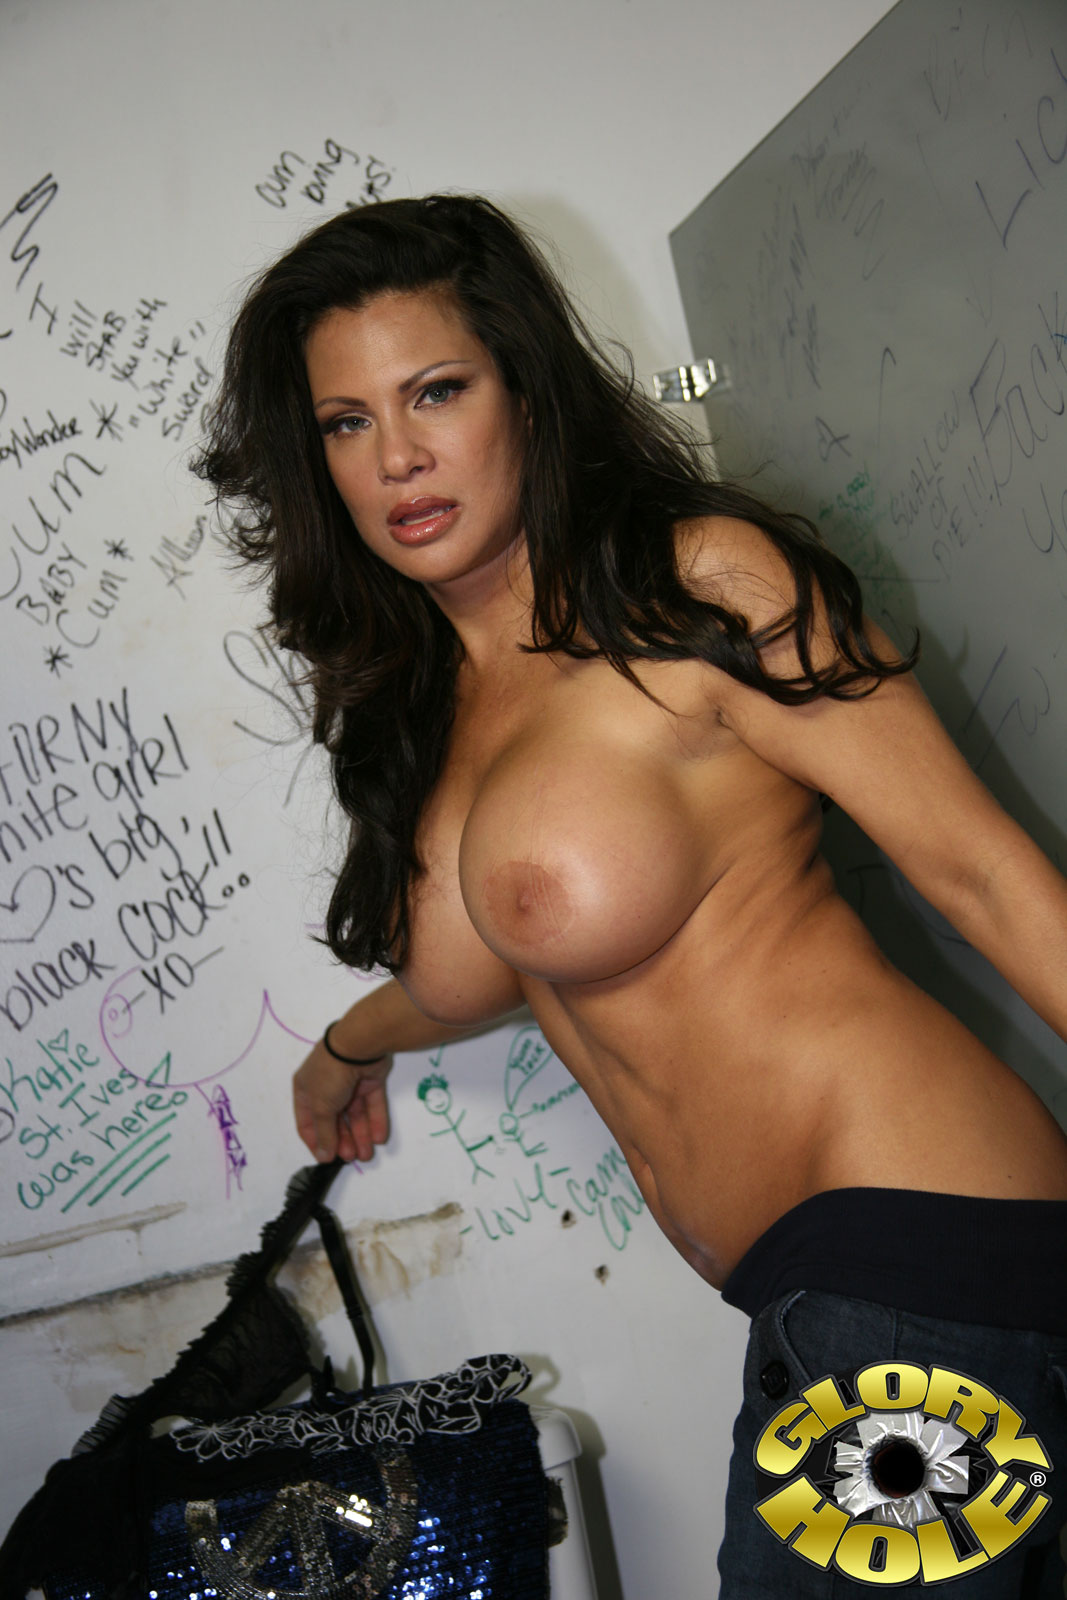 galleries GloryHole content teri weigel pic 10